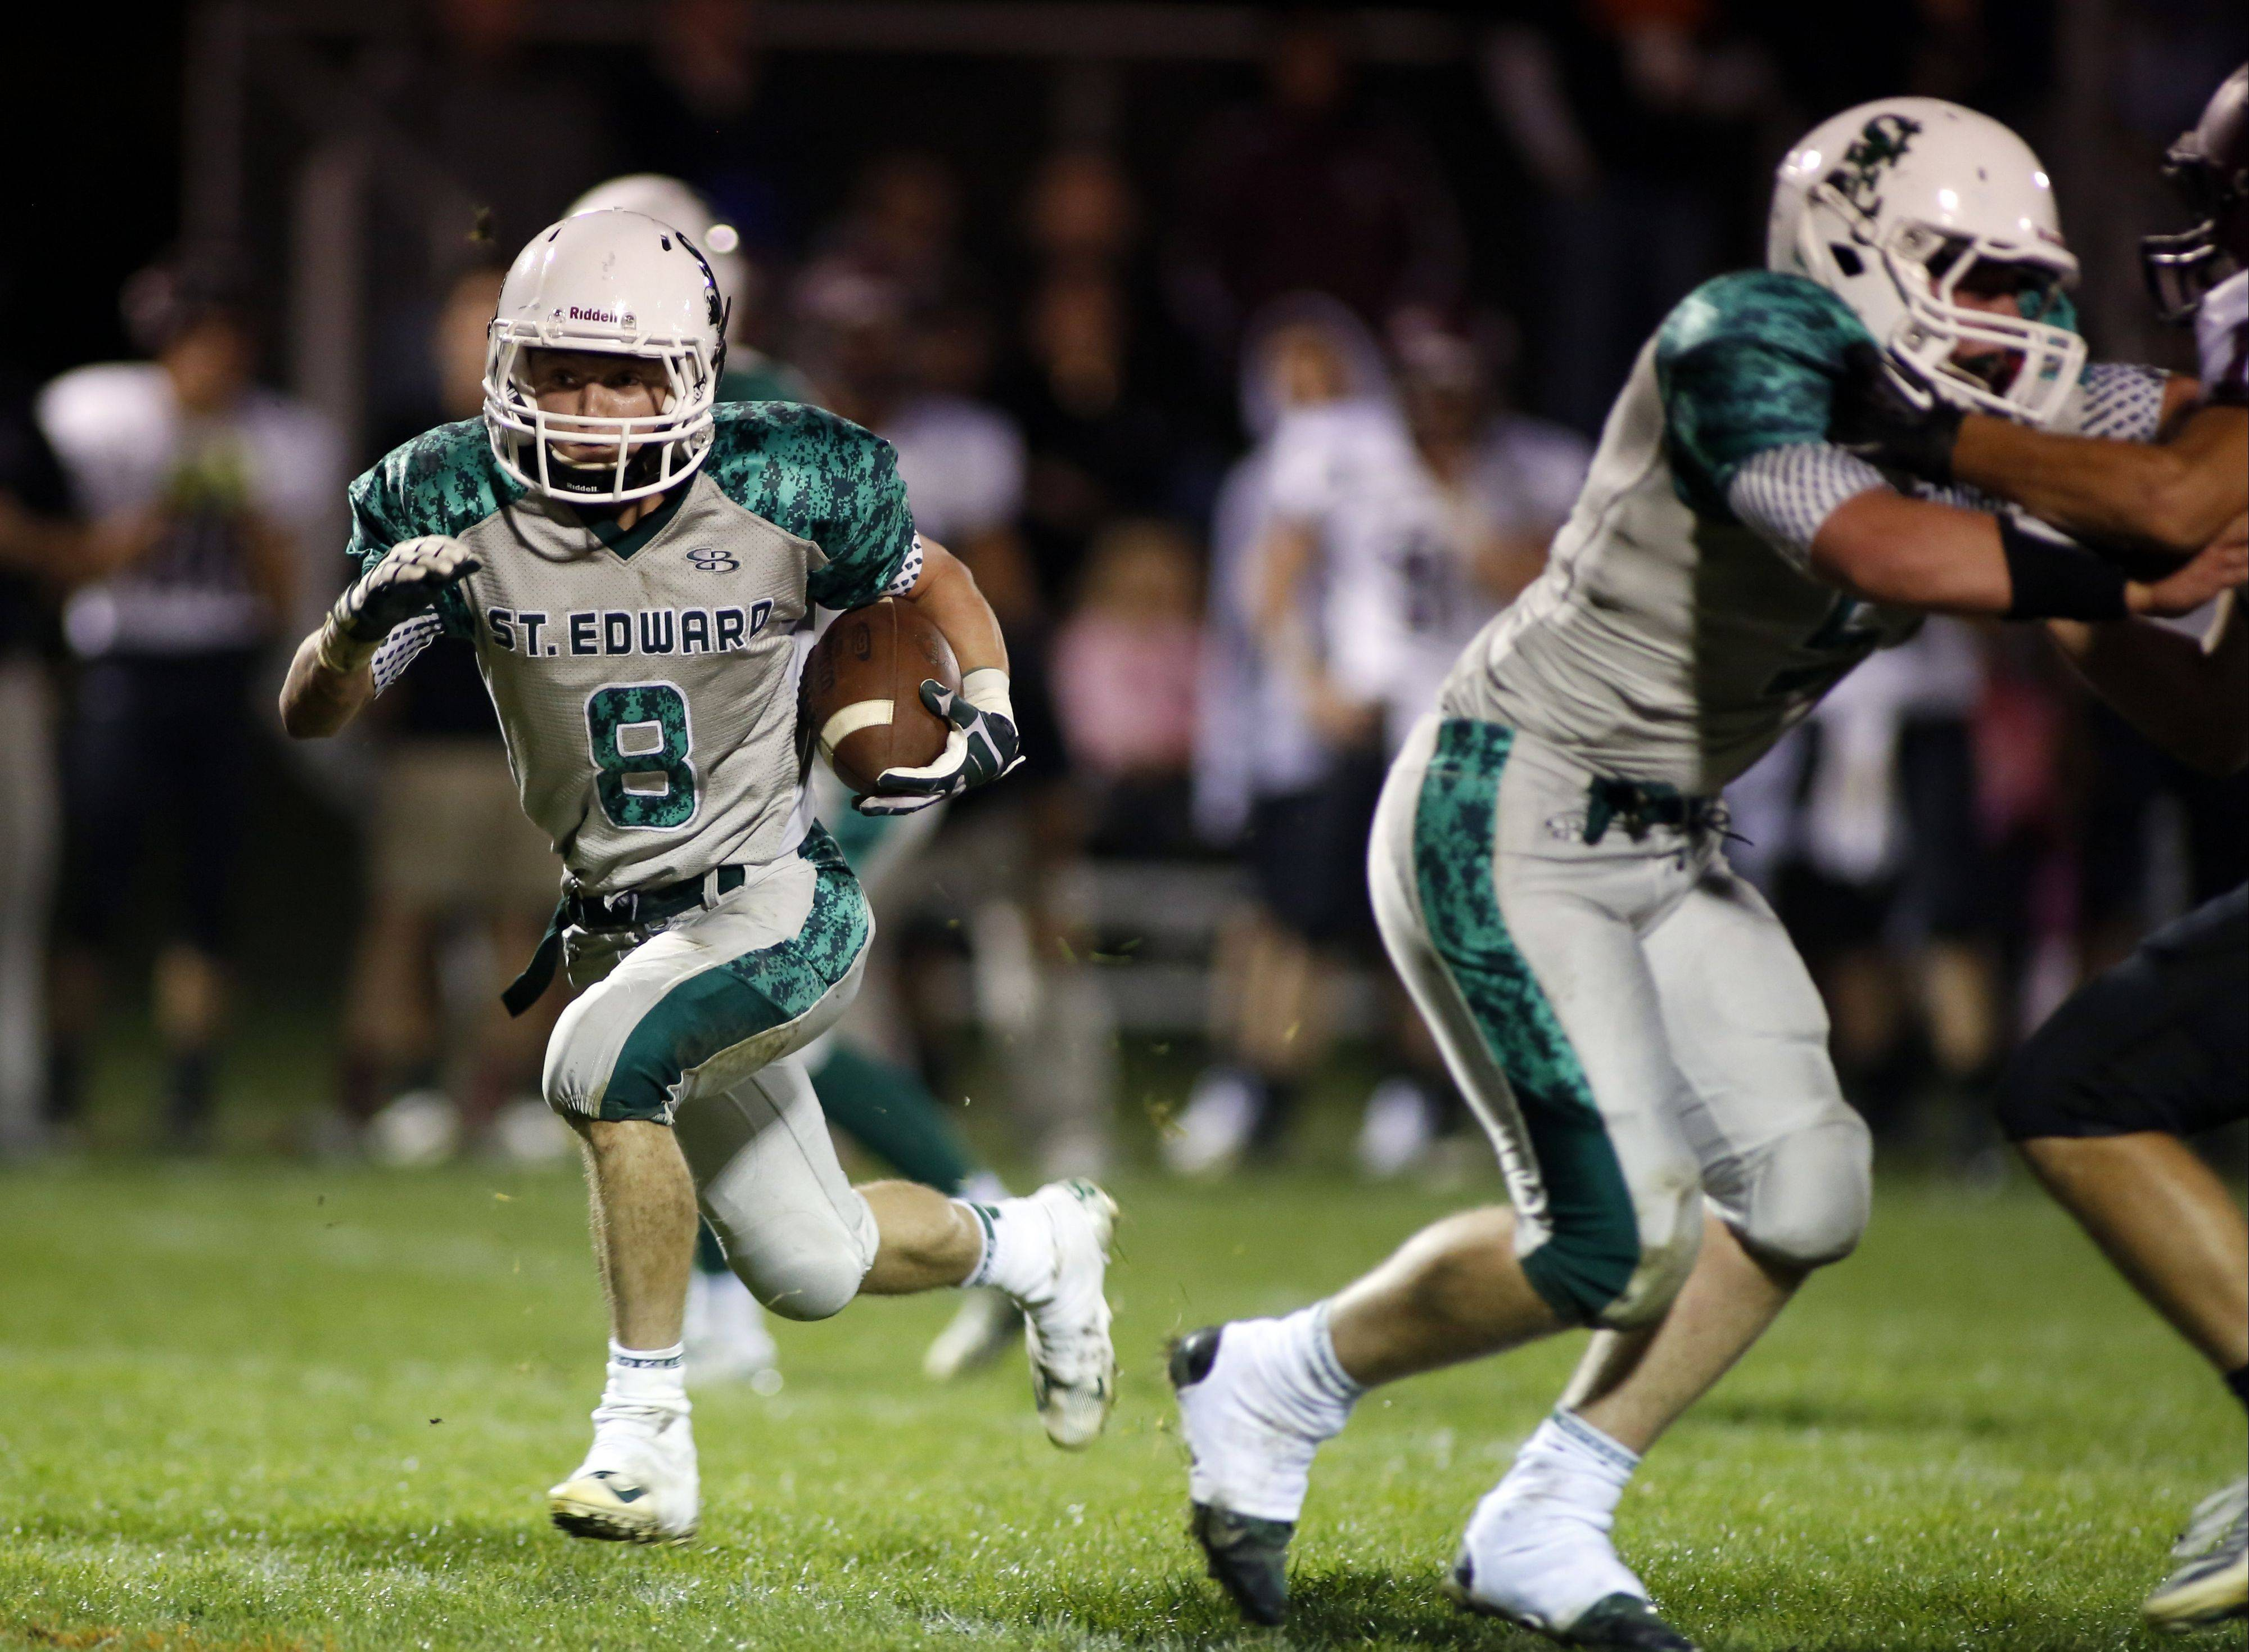 St. Edward's Michael Castoro rumbles in for a touchdown during the Green Wave's victory over Wheaton Academy on Friday at Greg True Field in Elgin.